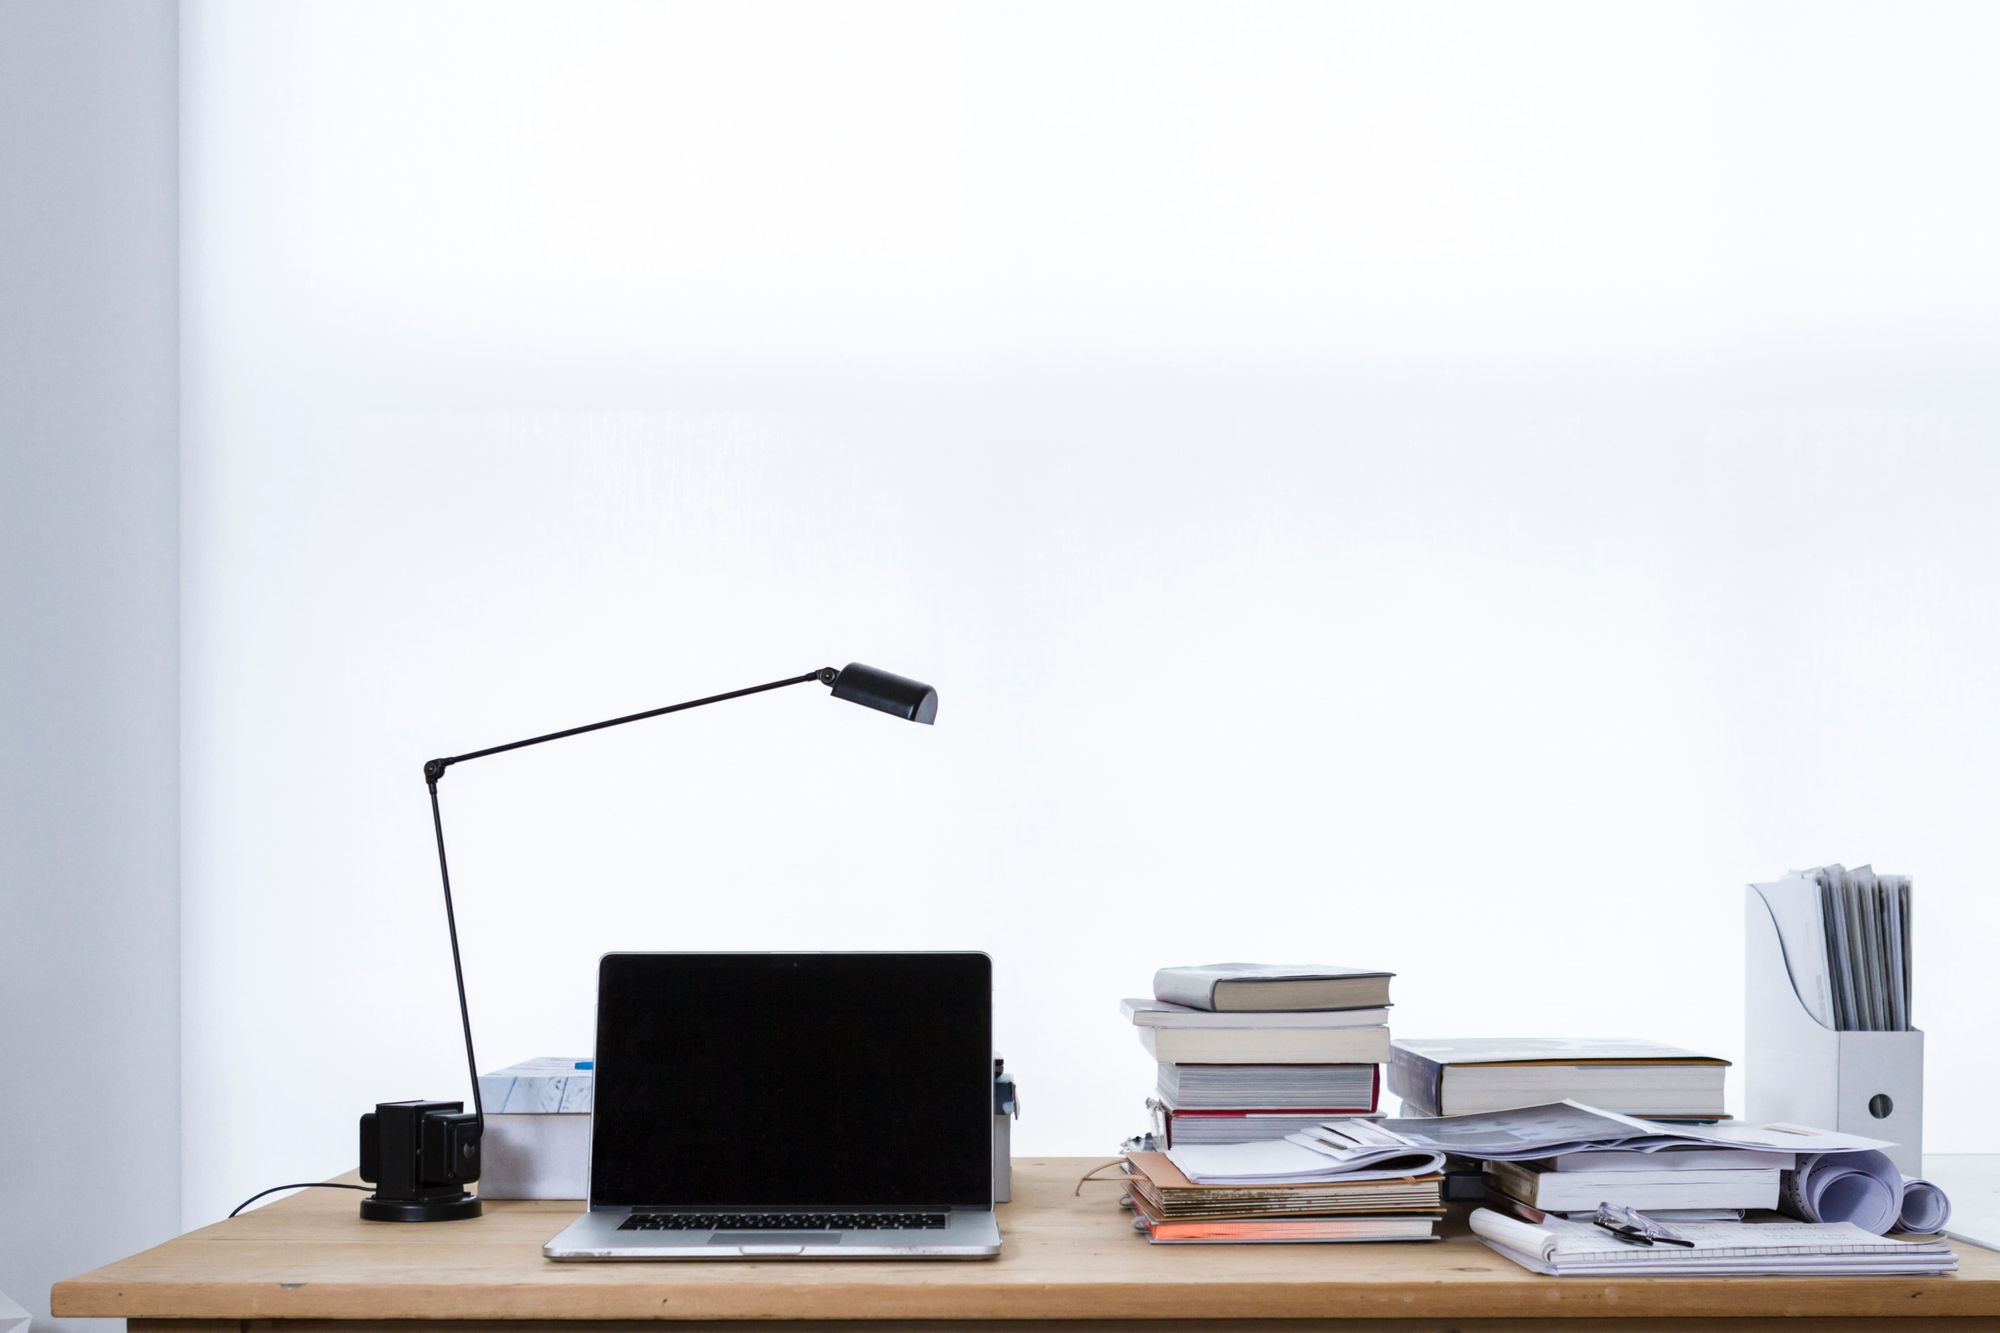 A learning desk consists of a laptop and books.